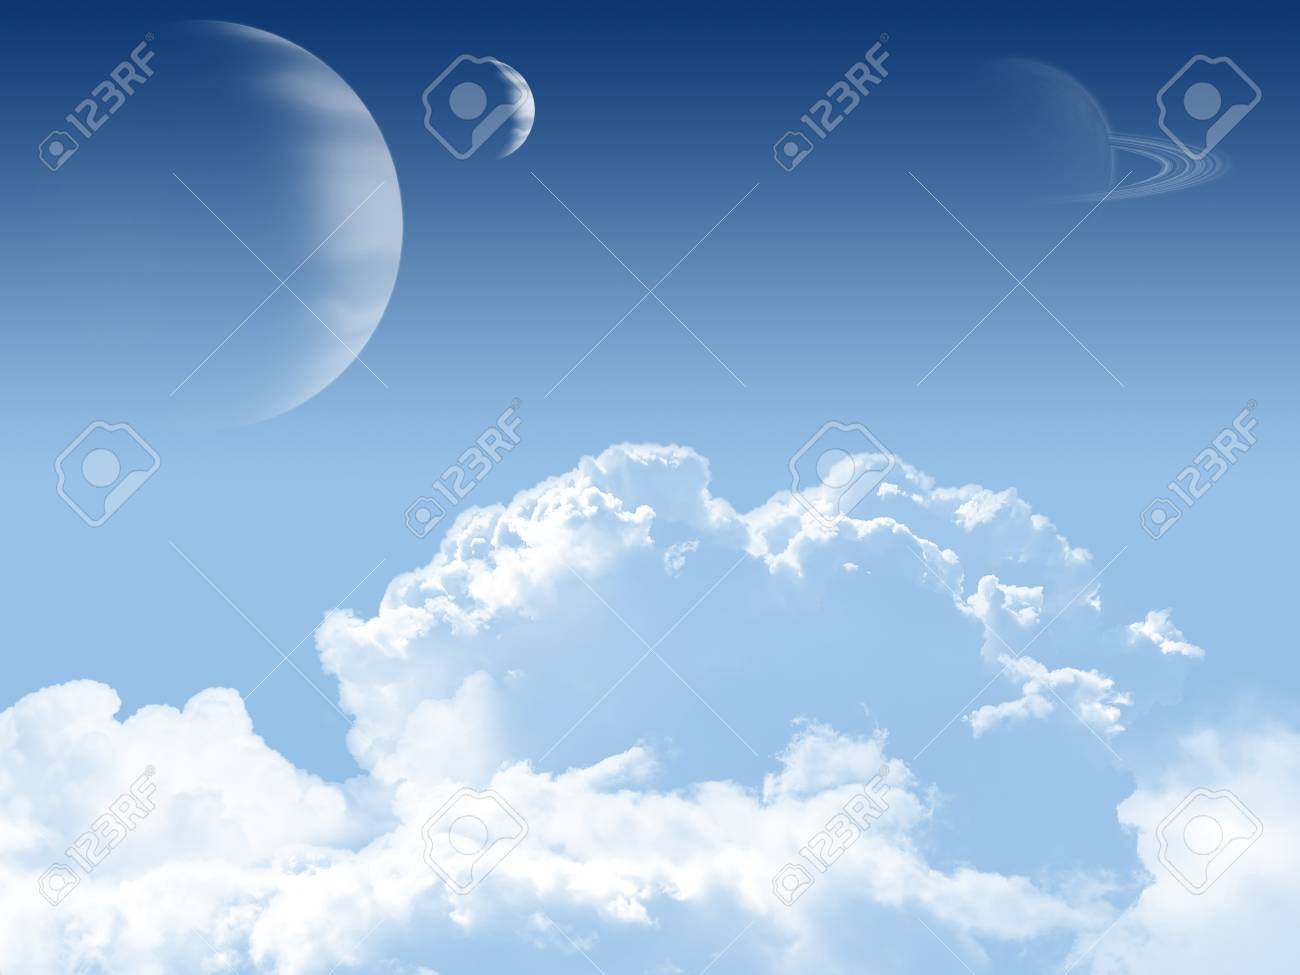 Sky background with planets. Stock Photo - 18512154